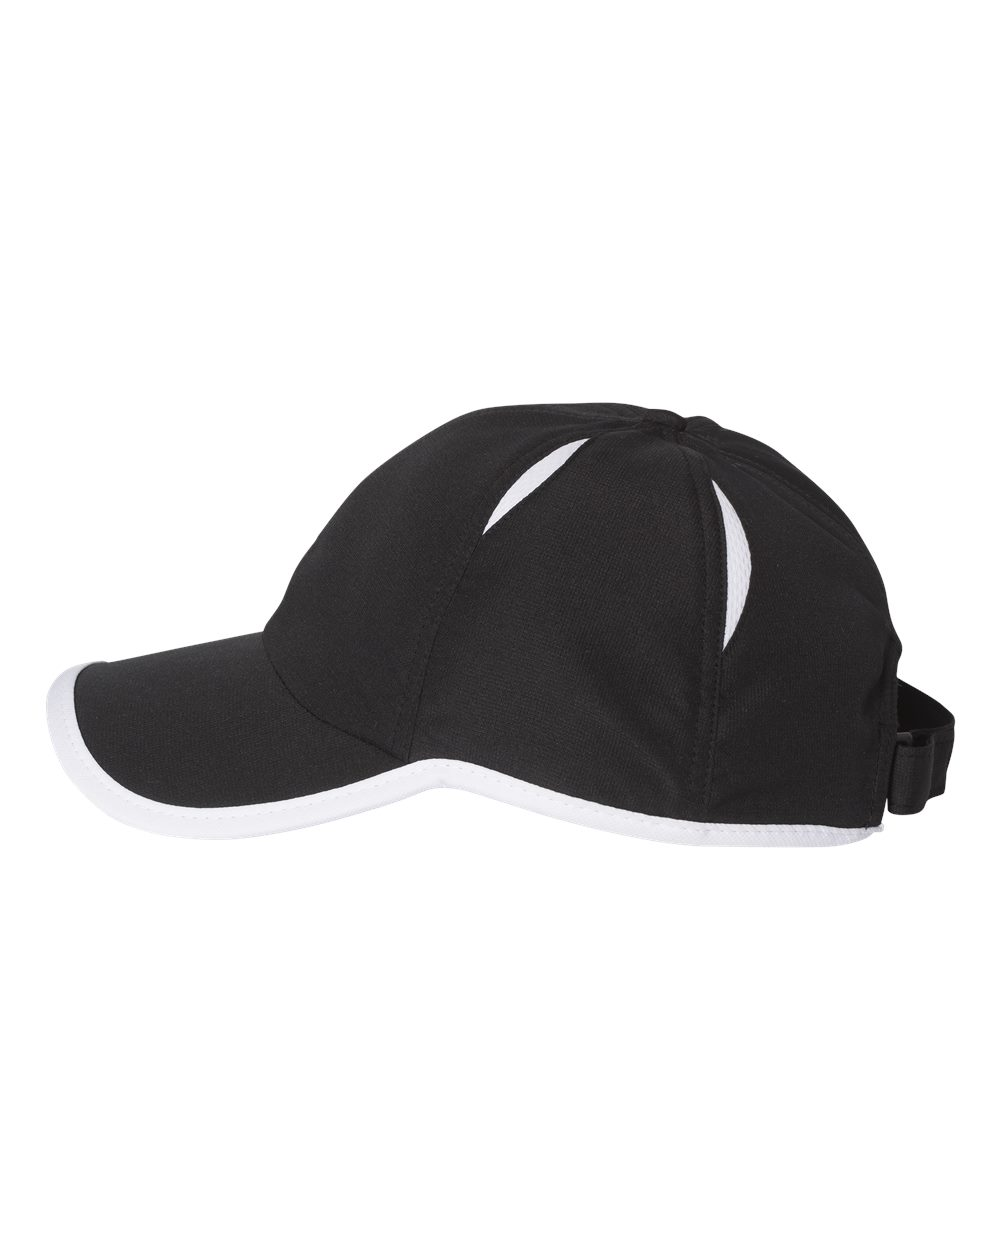 Team Sportsman - AH45 Runners Cap